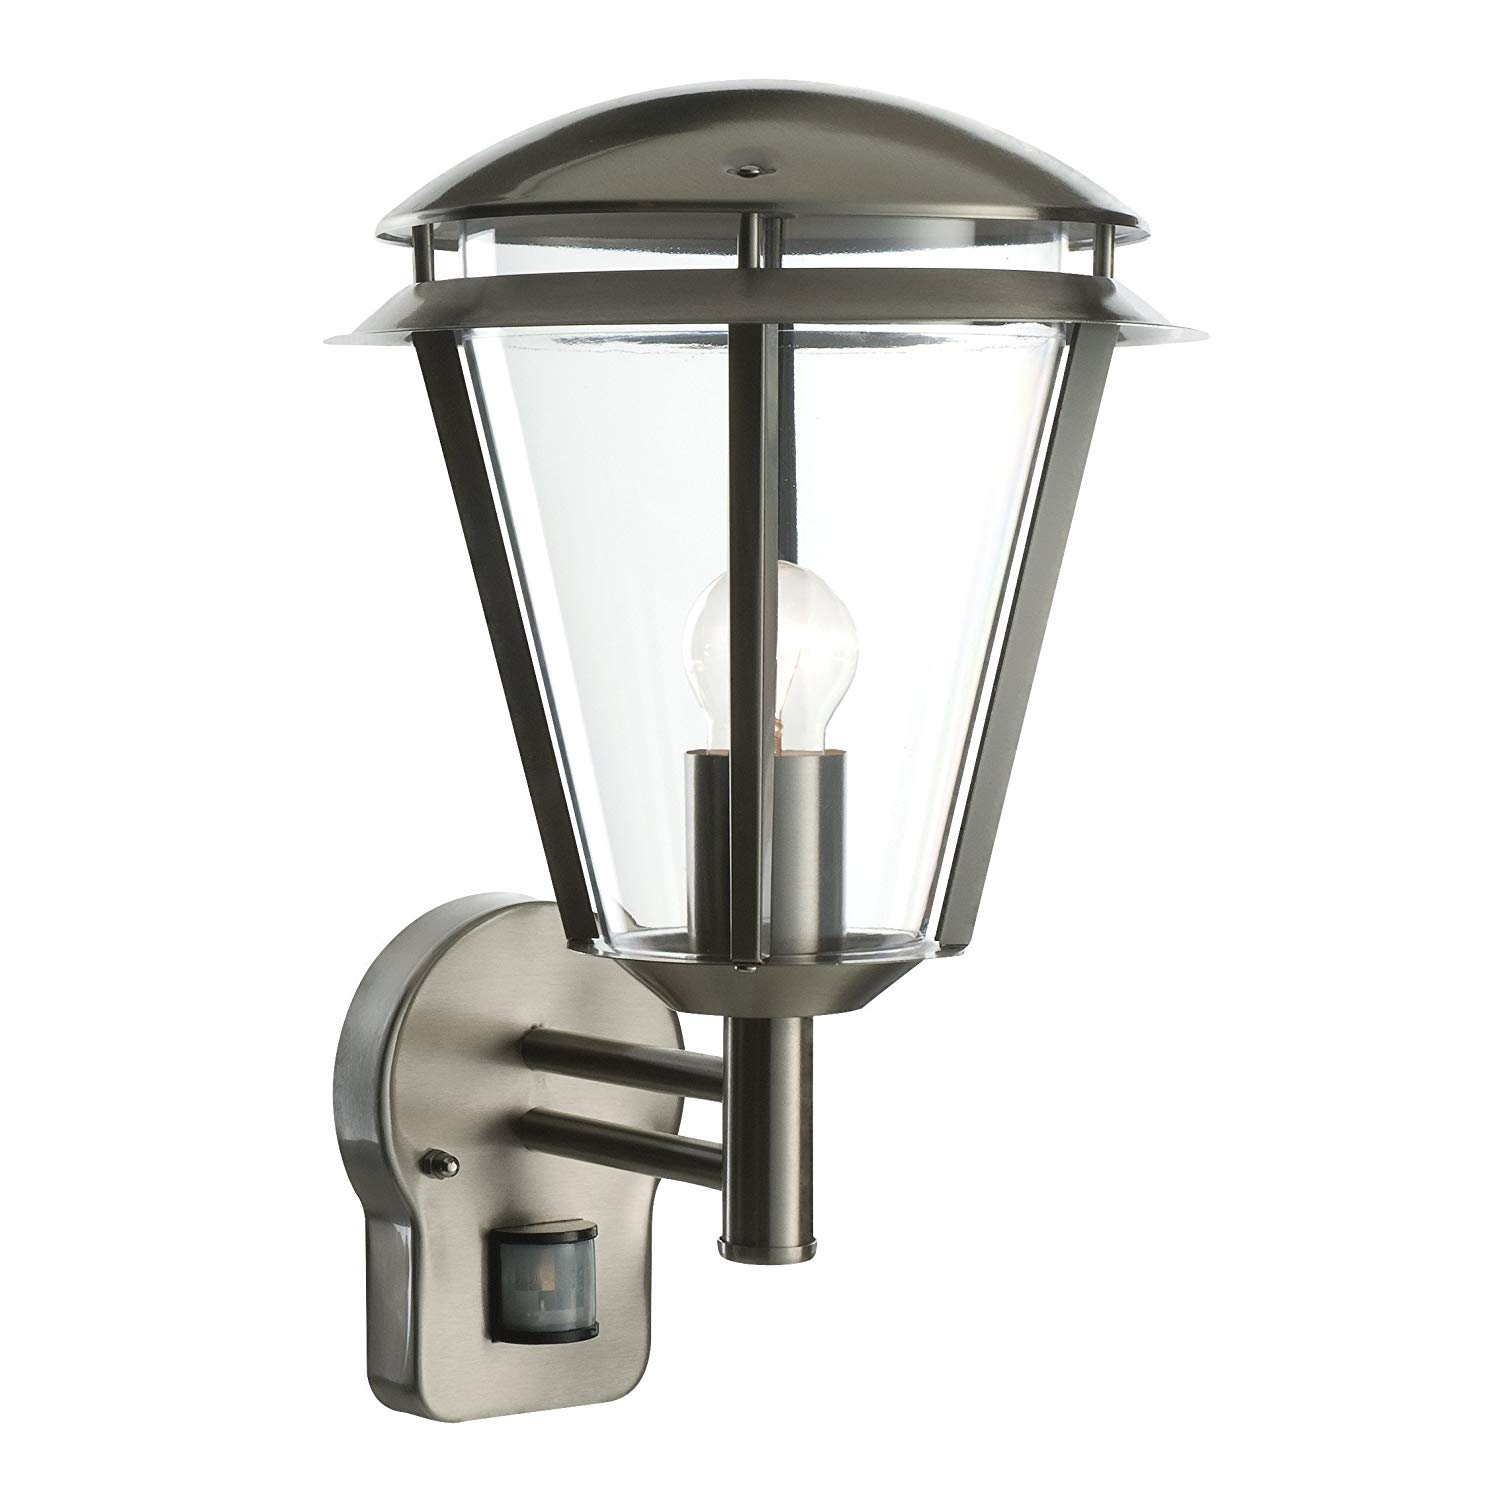 Saxby Inova Stainless Steel Outdoor Wall Light With Sensor Ip44 60W in Outdoor Lanterns With Pir (Image 18 of 20)